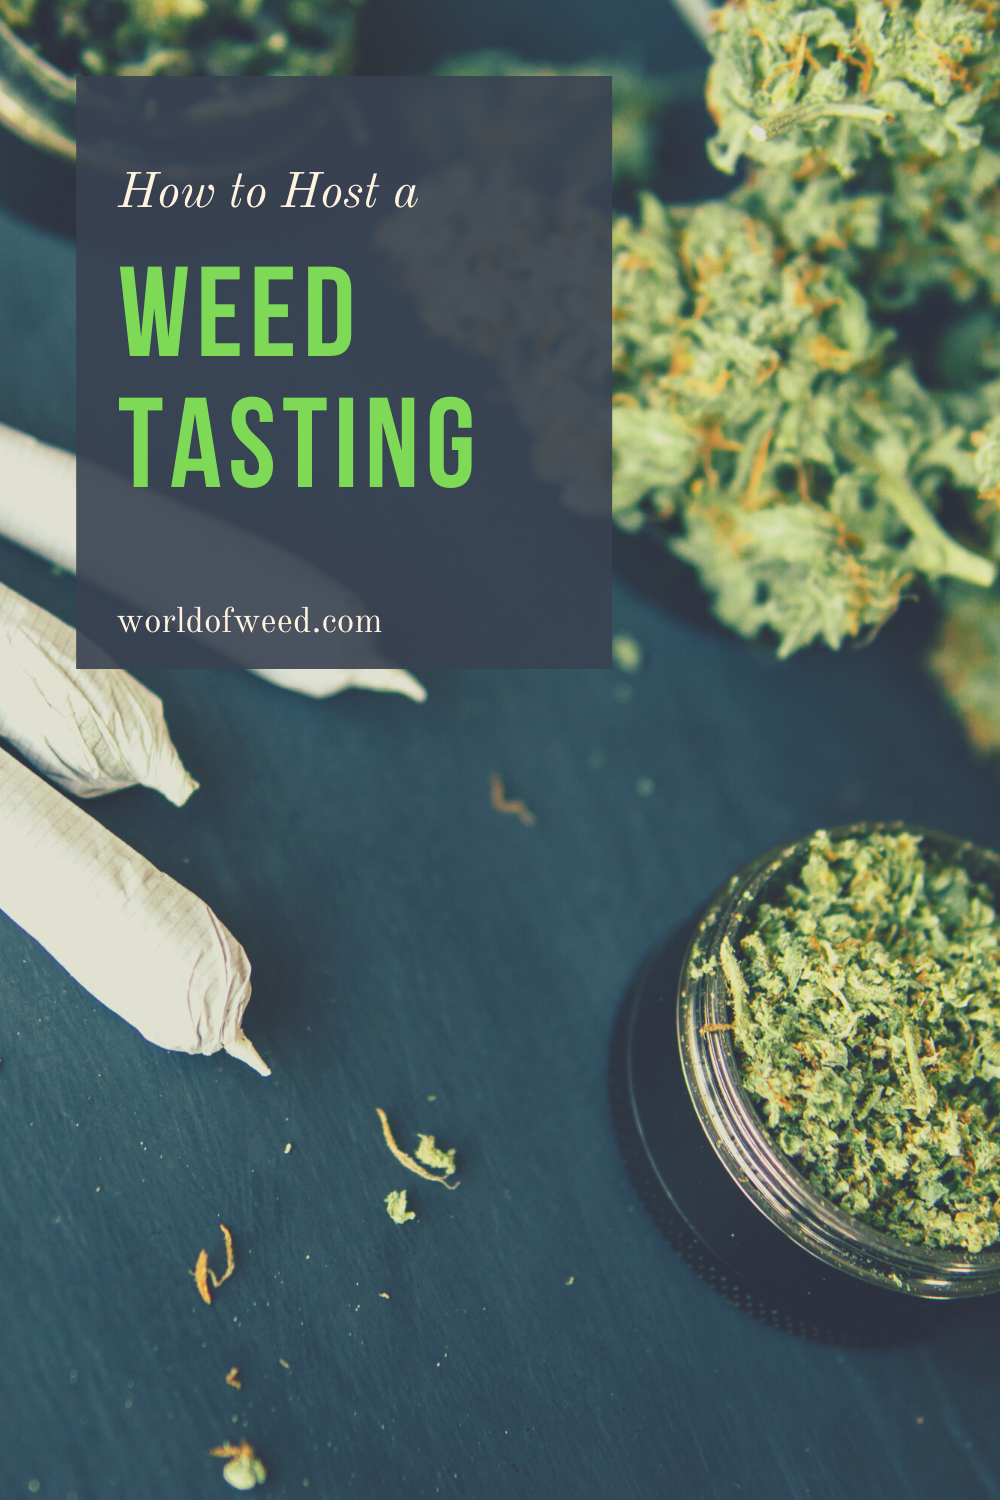 How to Host a Weed Tasting